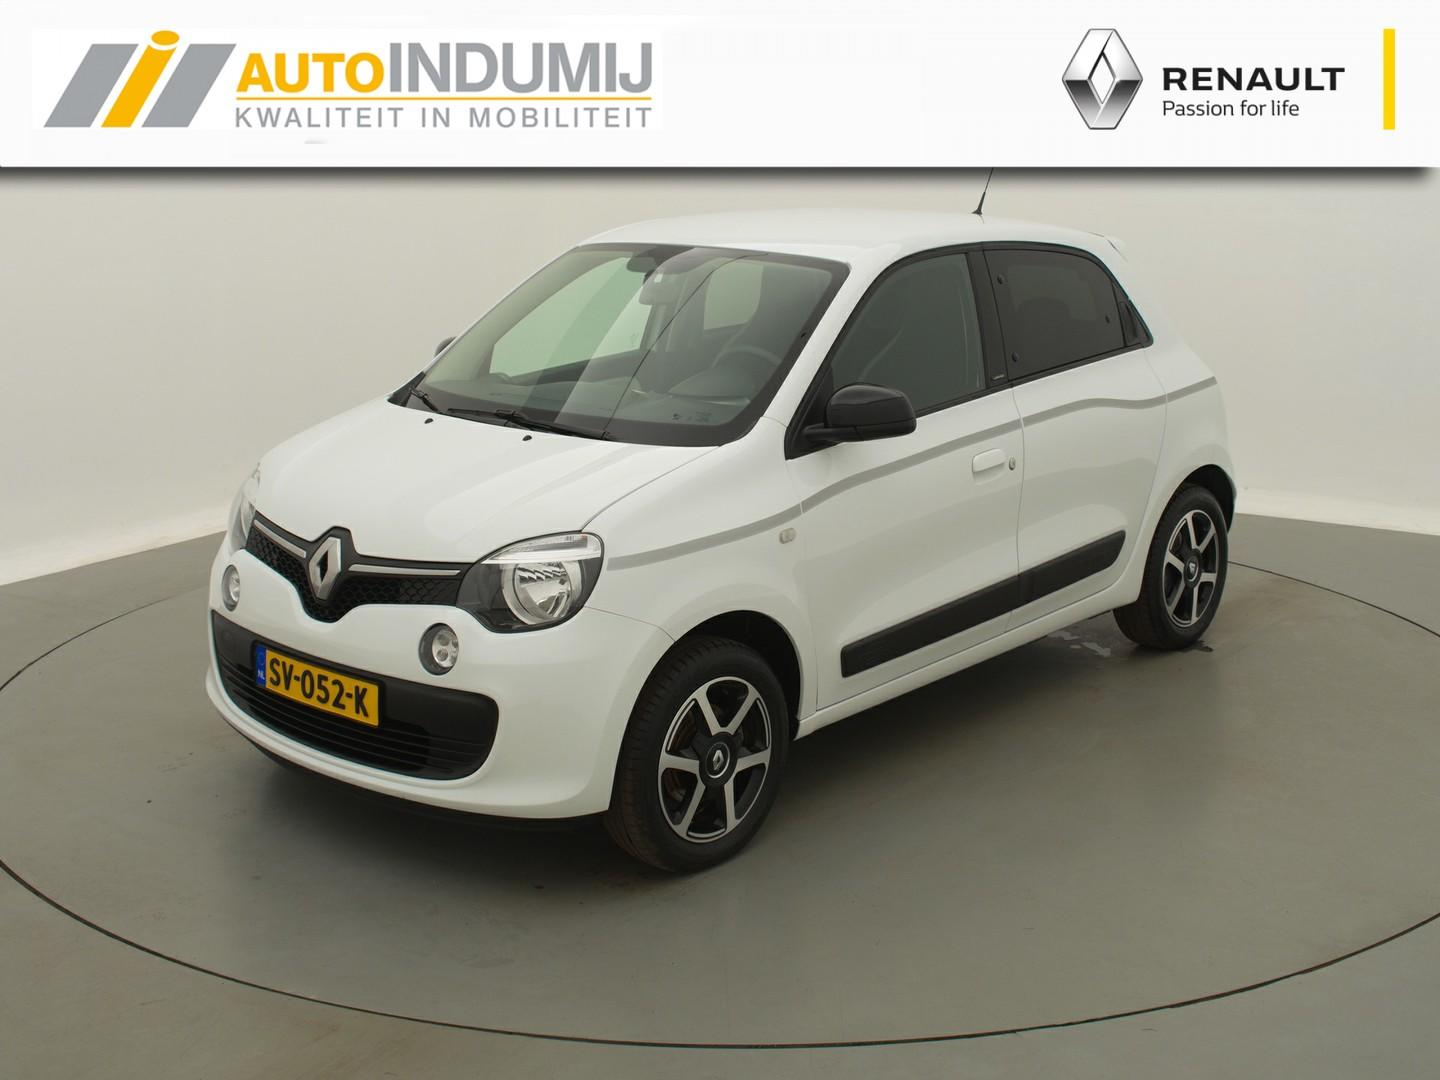 Renault Twingo 1.0 sce limited / pdc / cruise control / airco